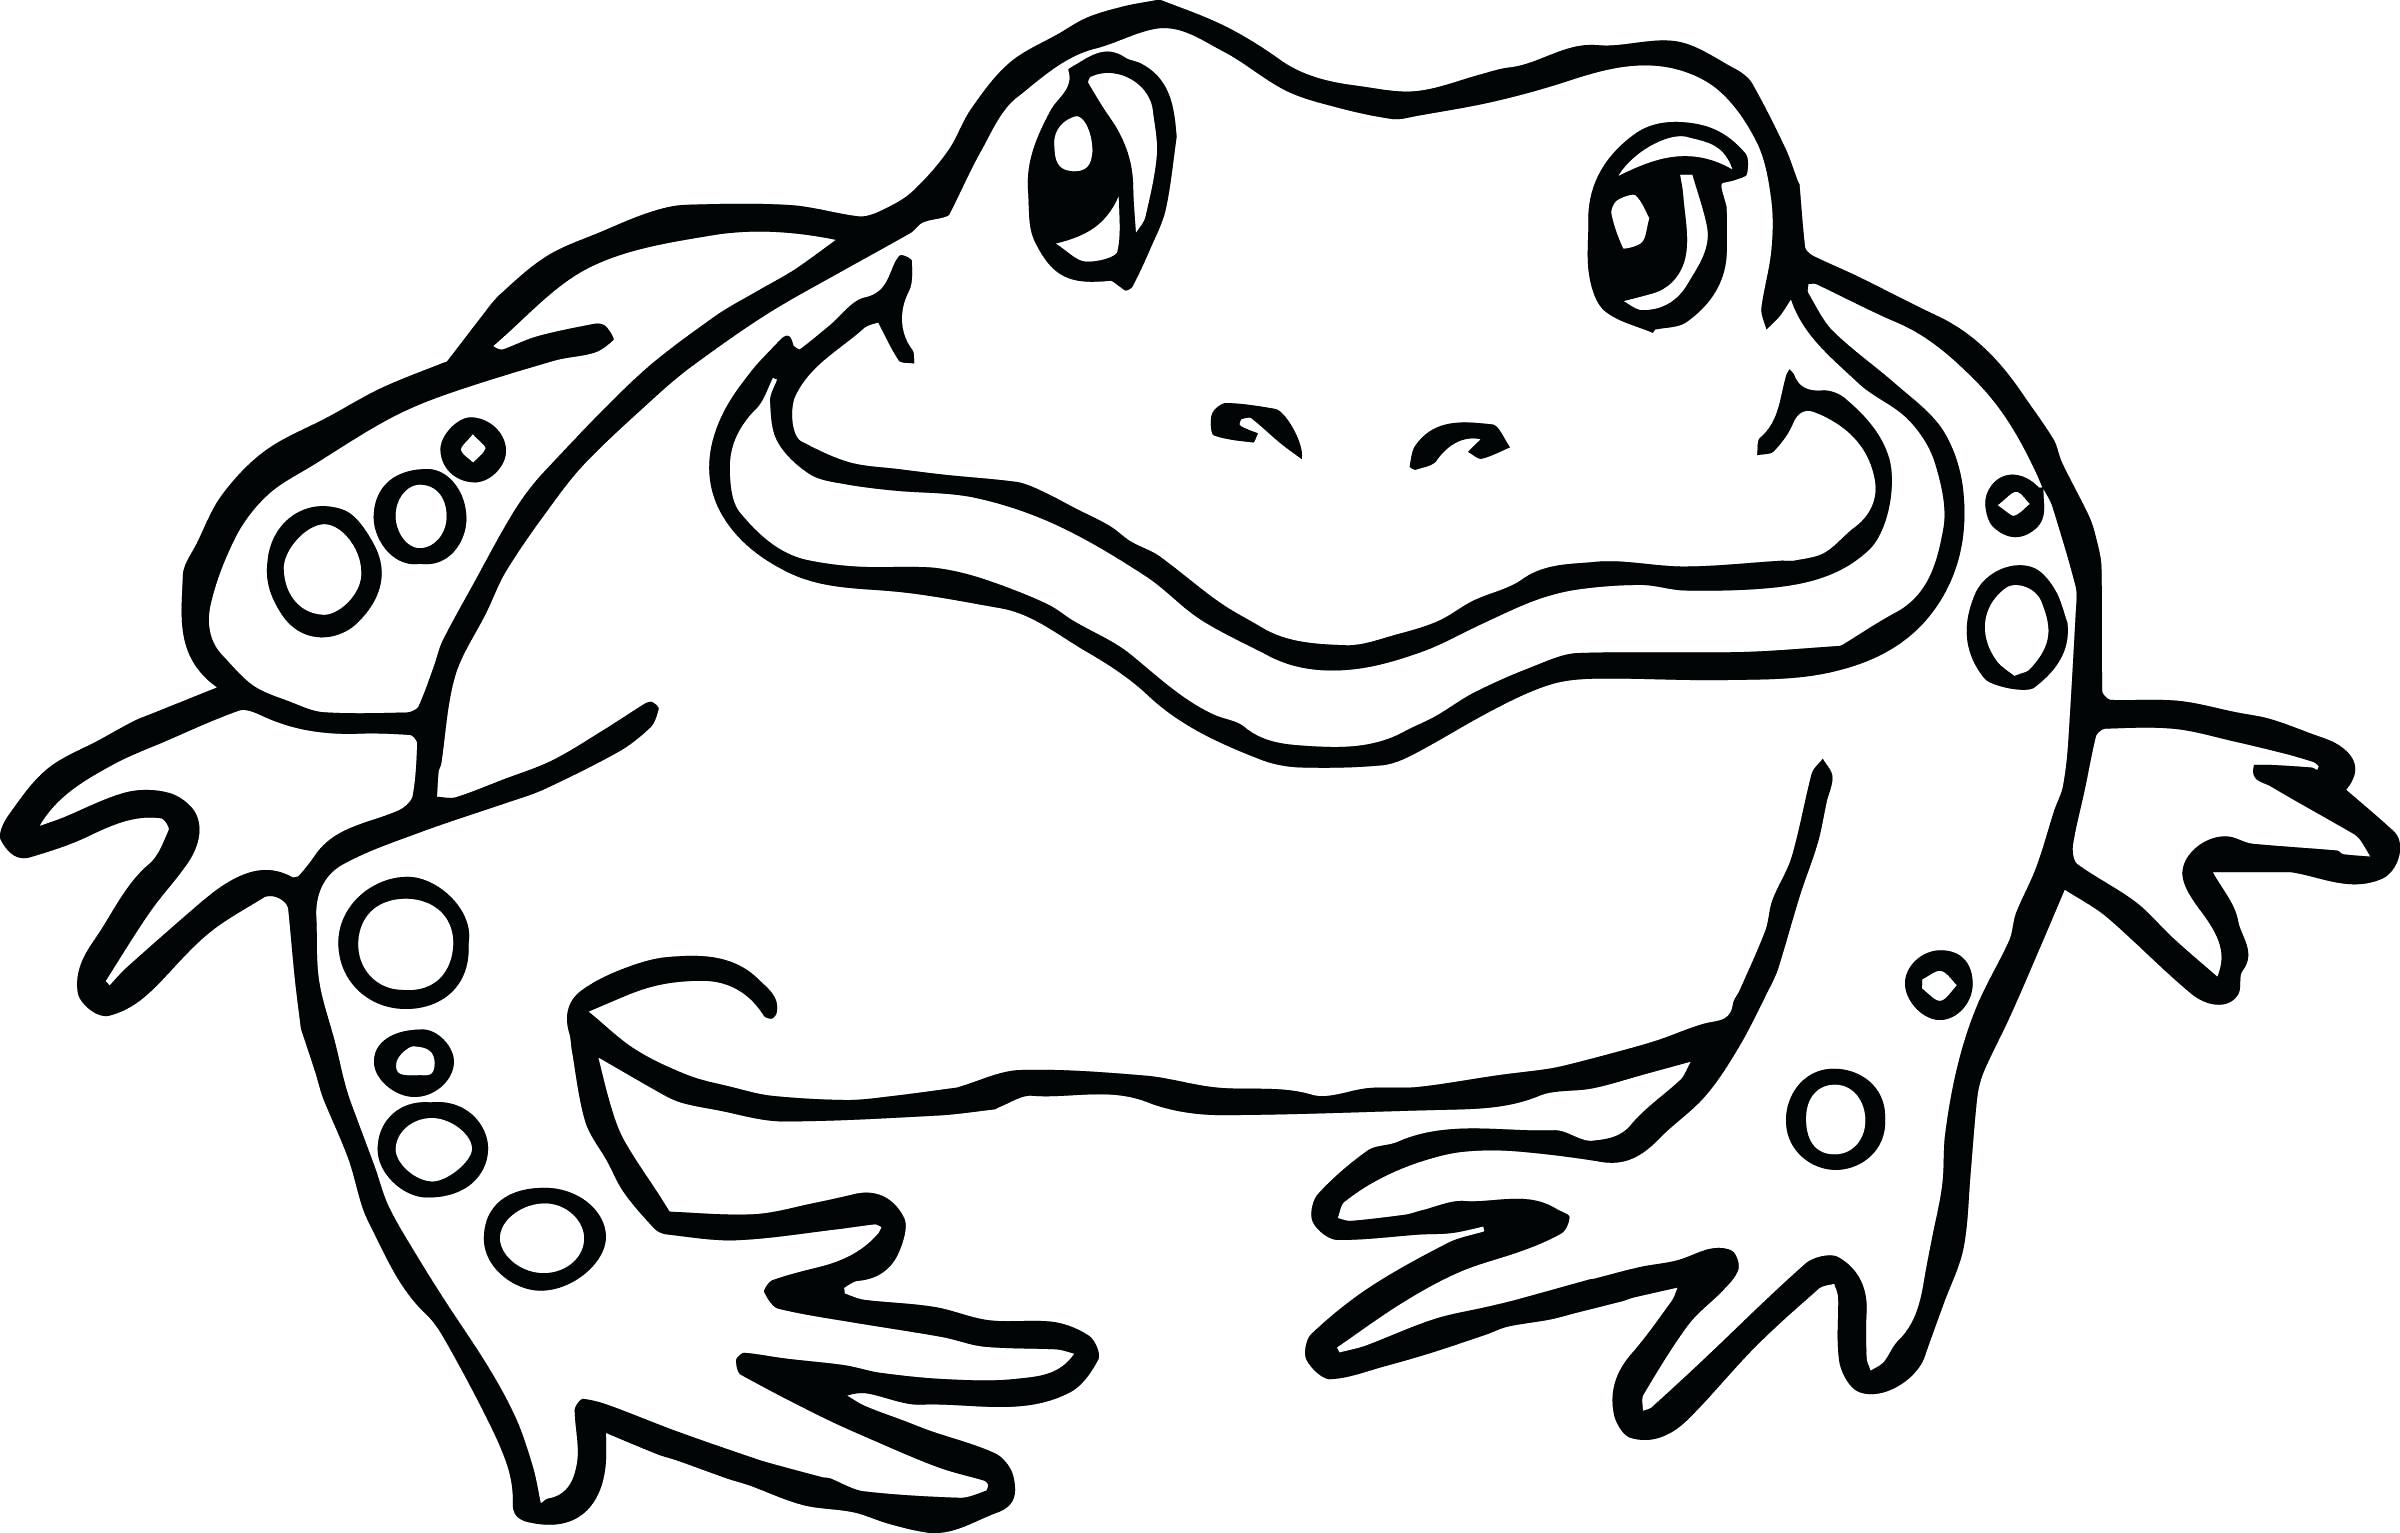 2400x1533 Coloring Amphibian Coloring Pages Bullfrog Animal Inspirational